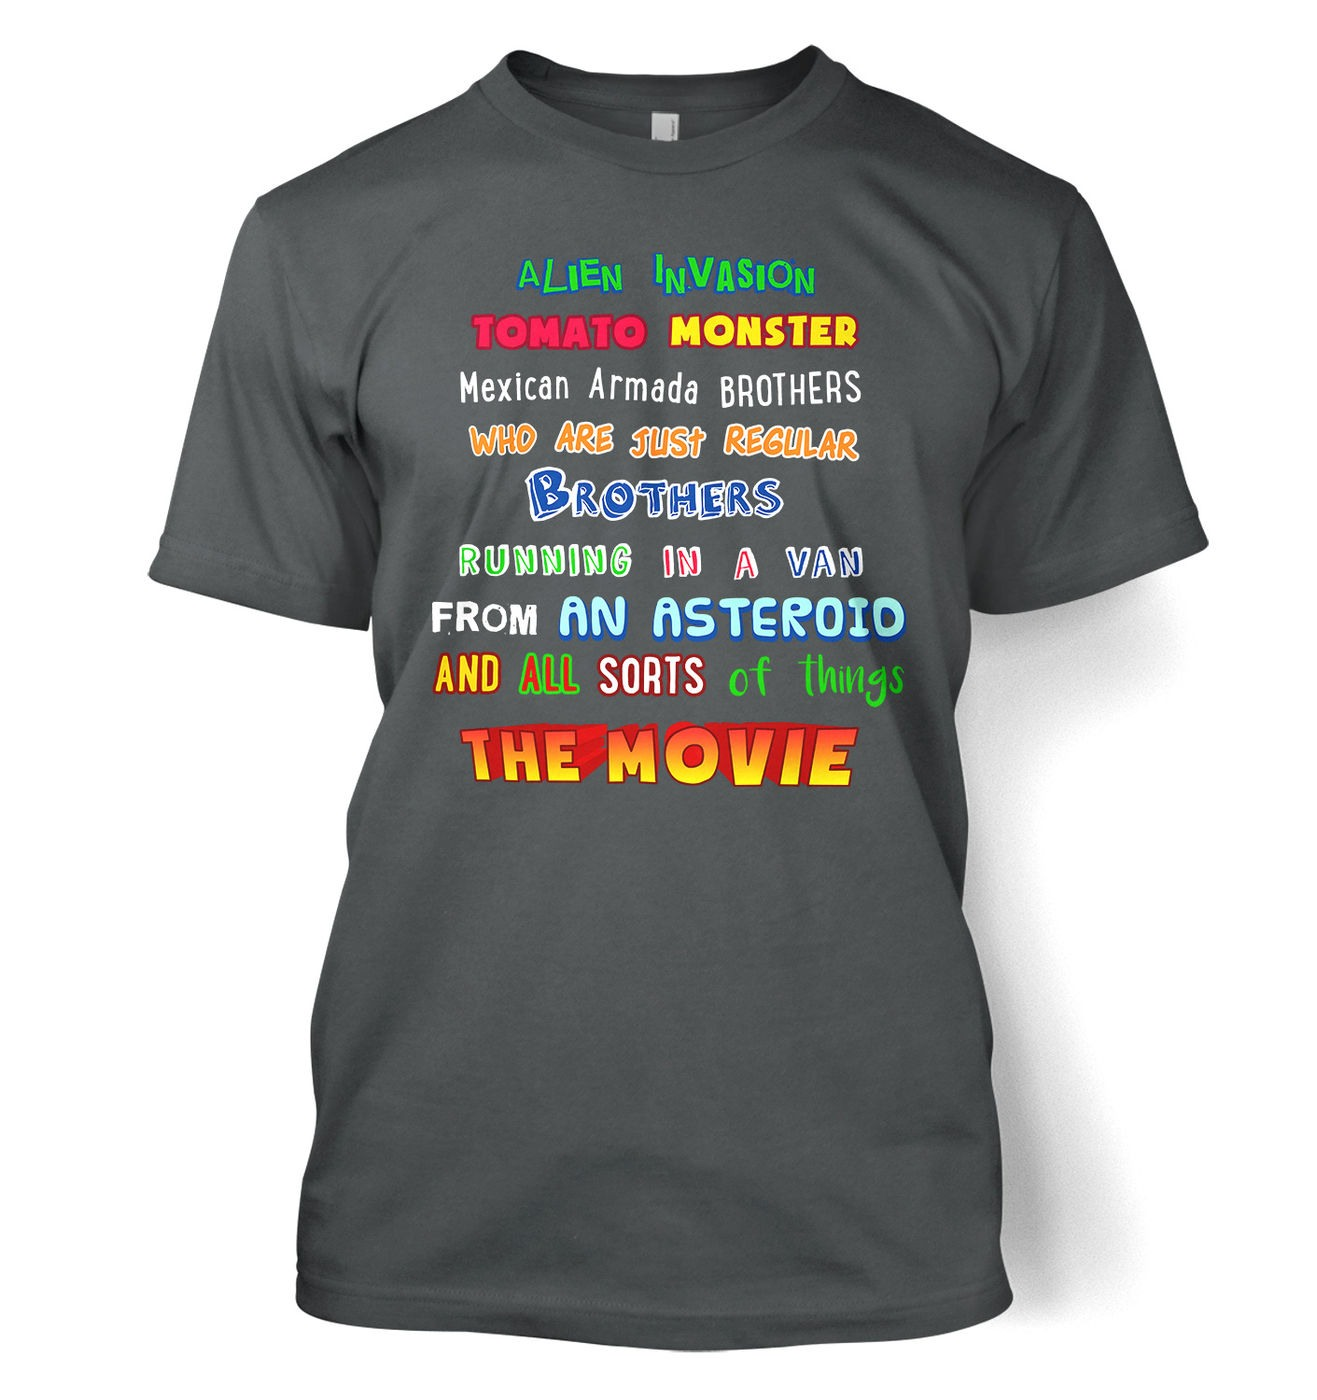 Two Brothers t-shirt by Something Geeky